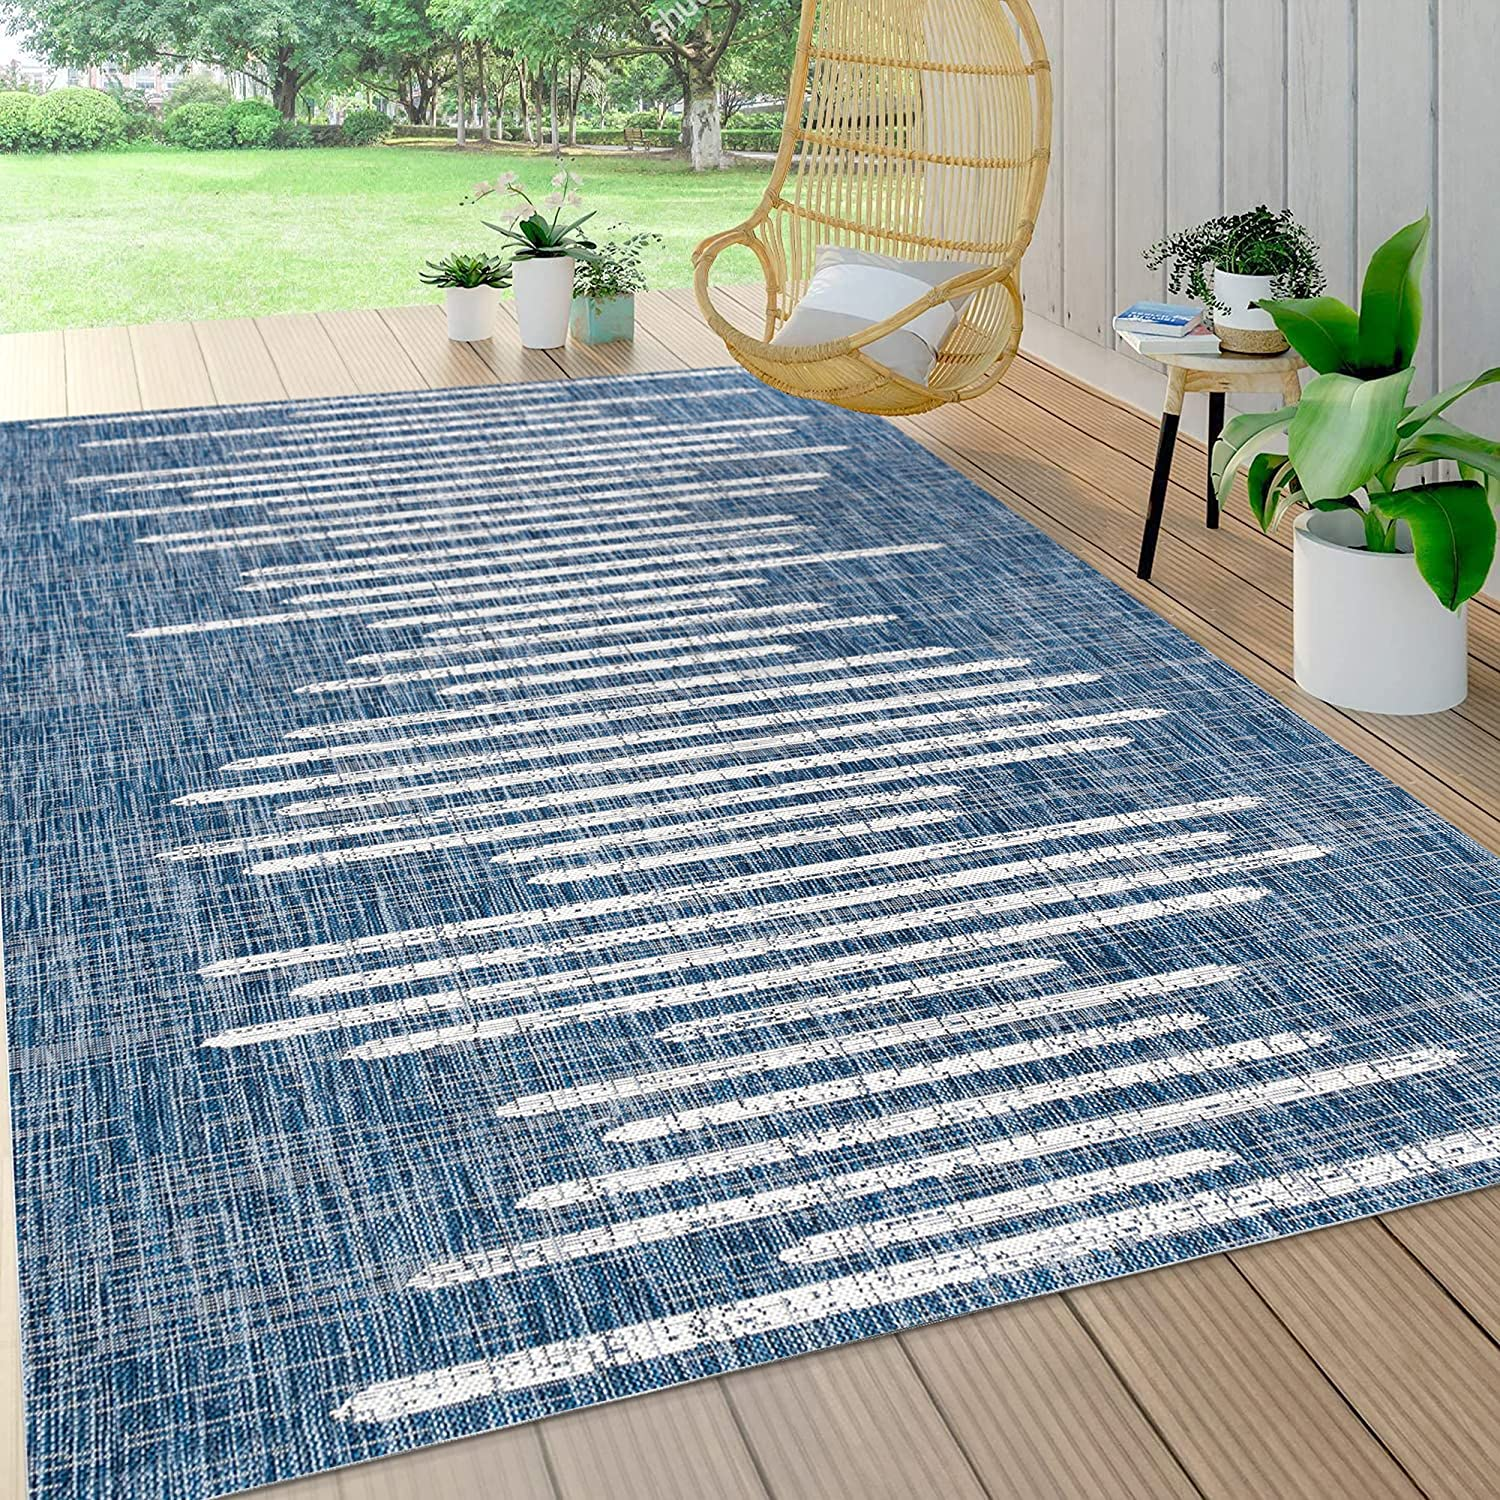 JONATHAN Y SMB124C-4 Zolak All items free shipping Berber Indoor Outdoo Stripe Selling rankings Geometric